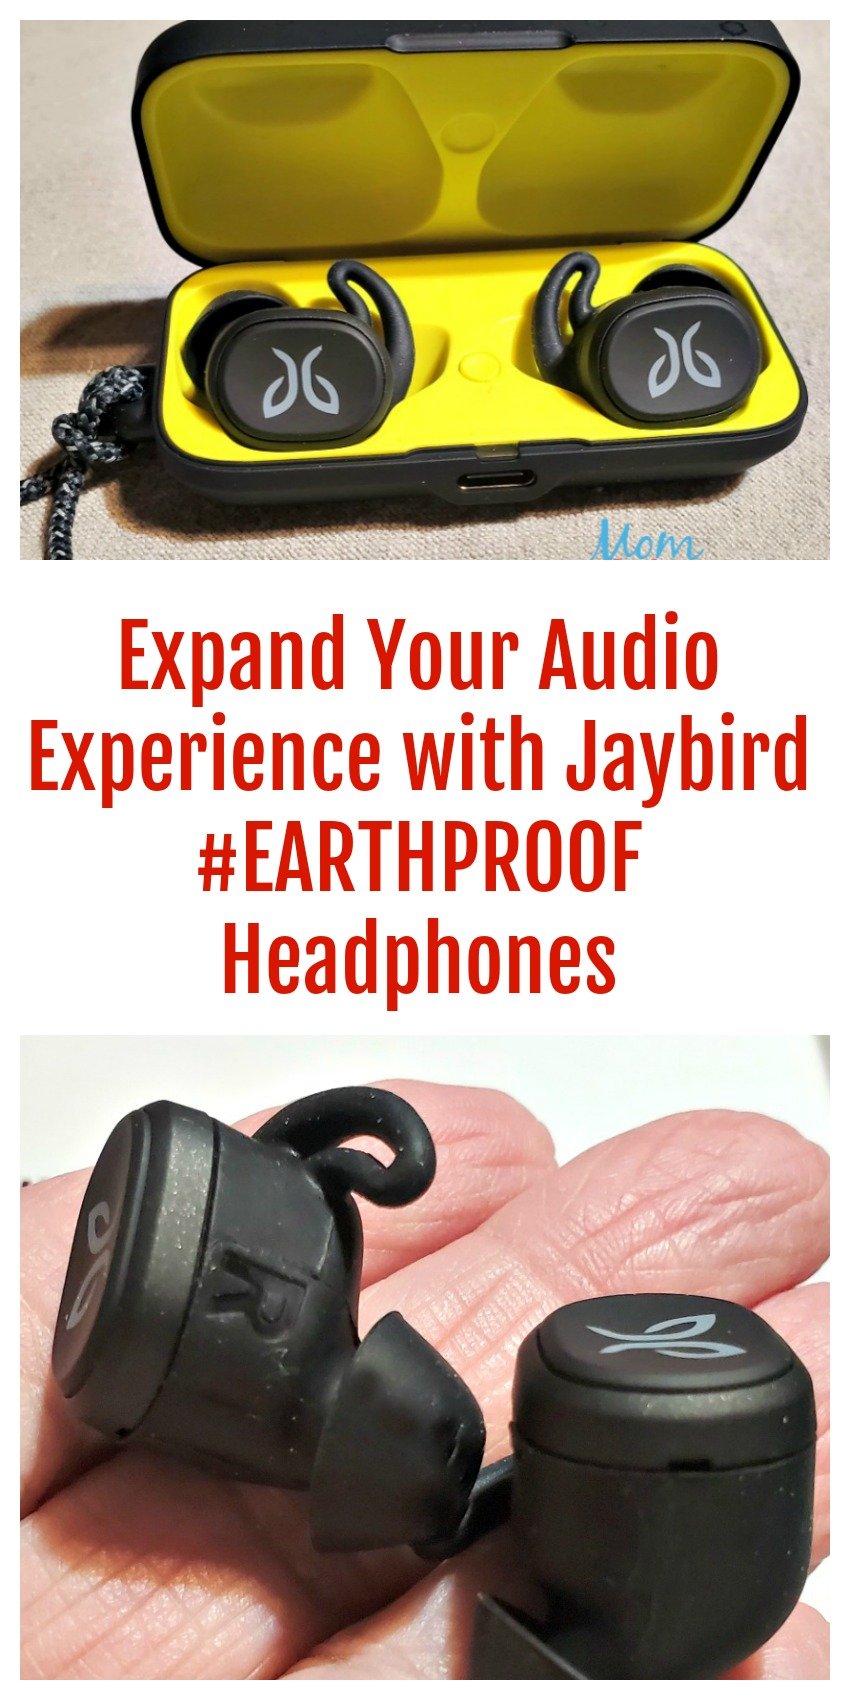 Expand Your Audio Experience with Jaybird #EARTHPROOF Headphones